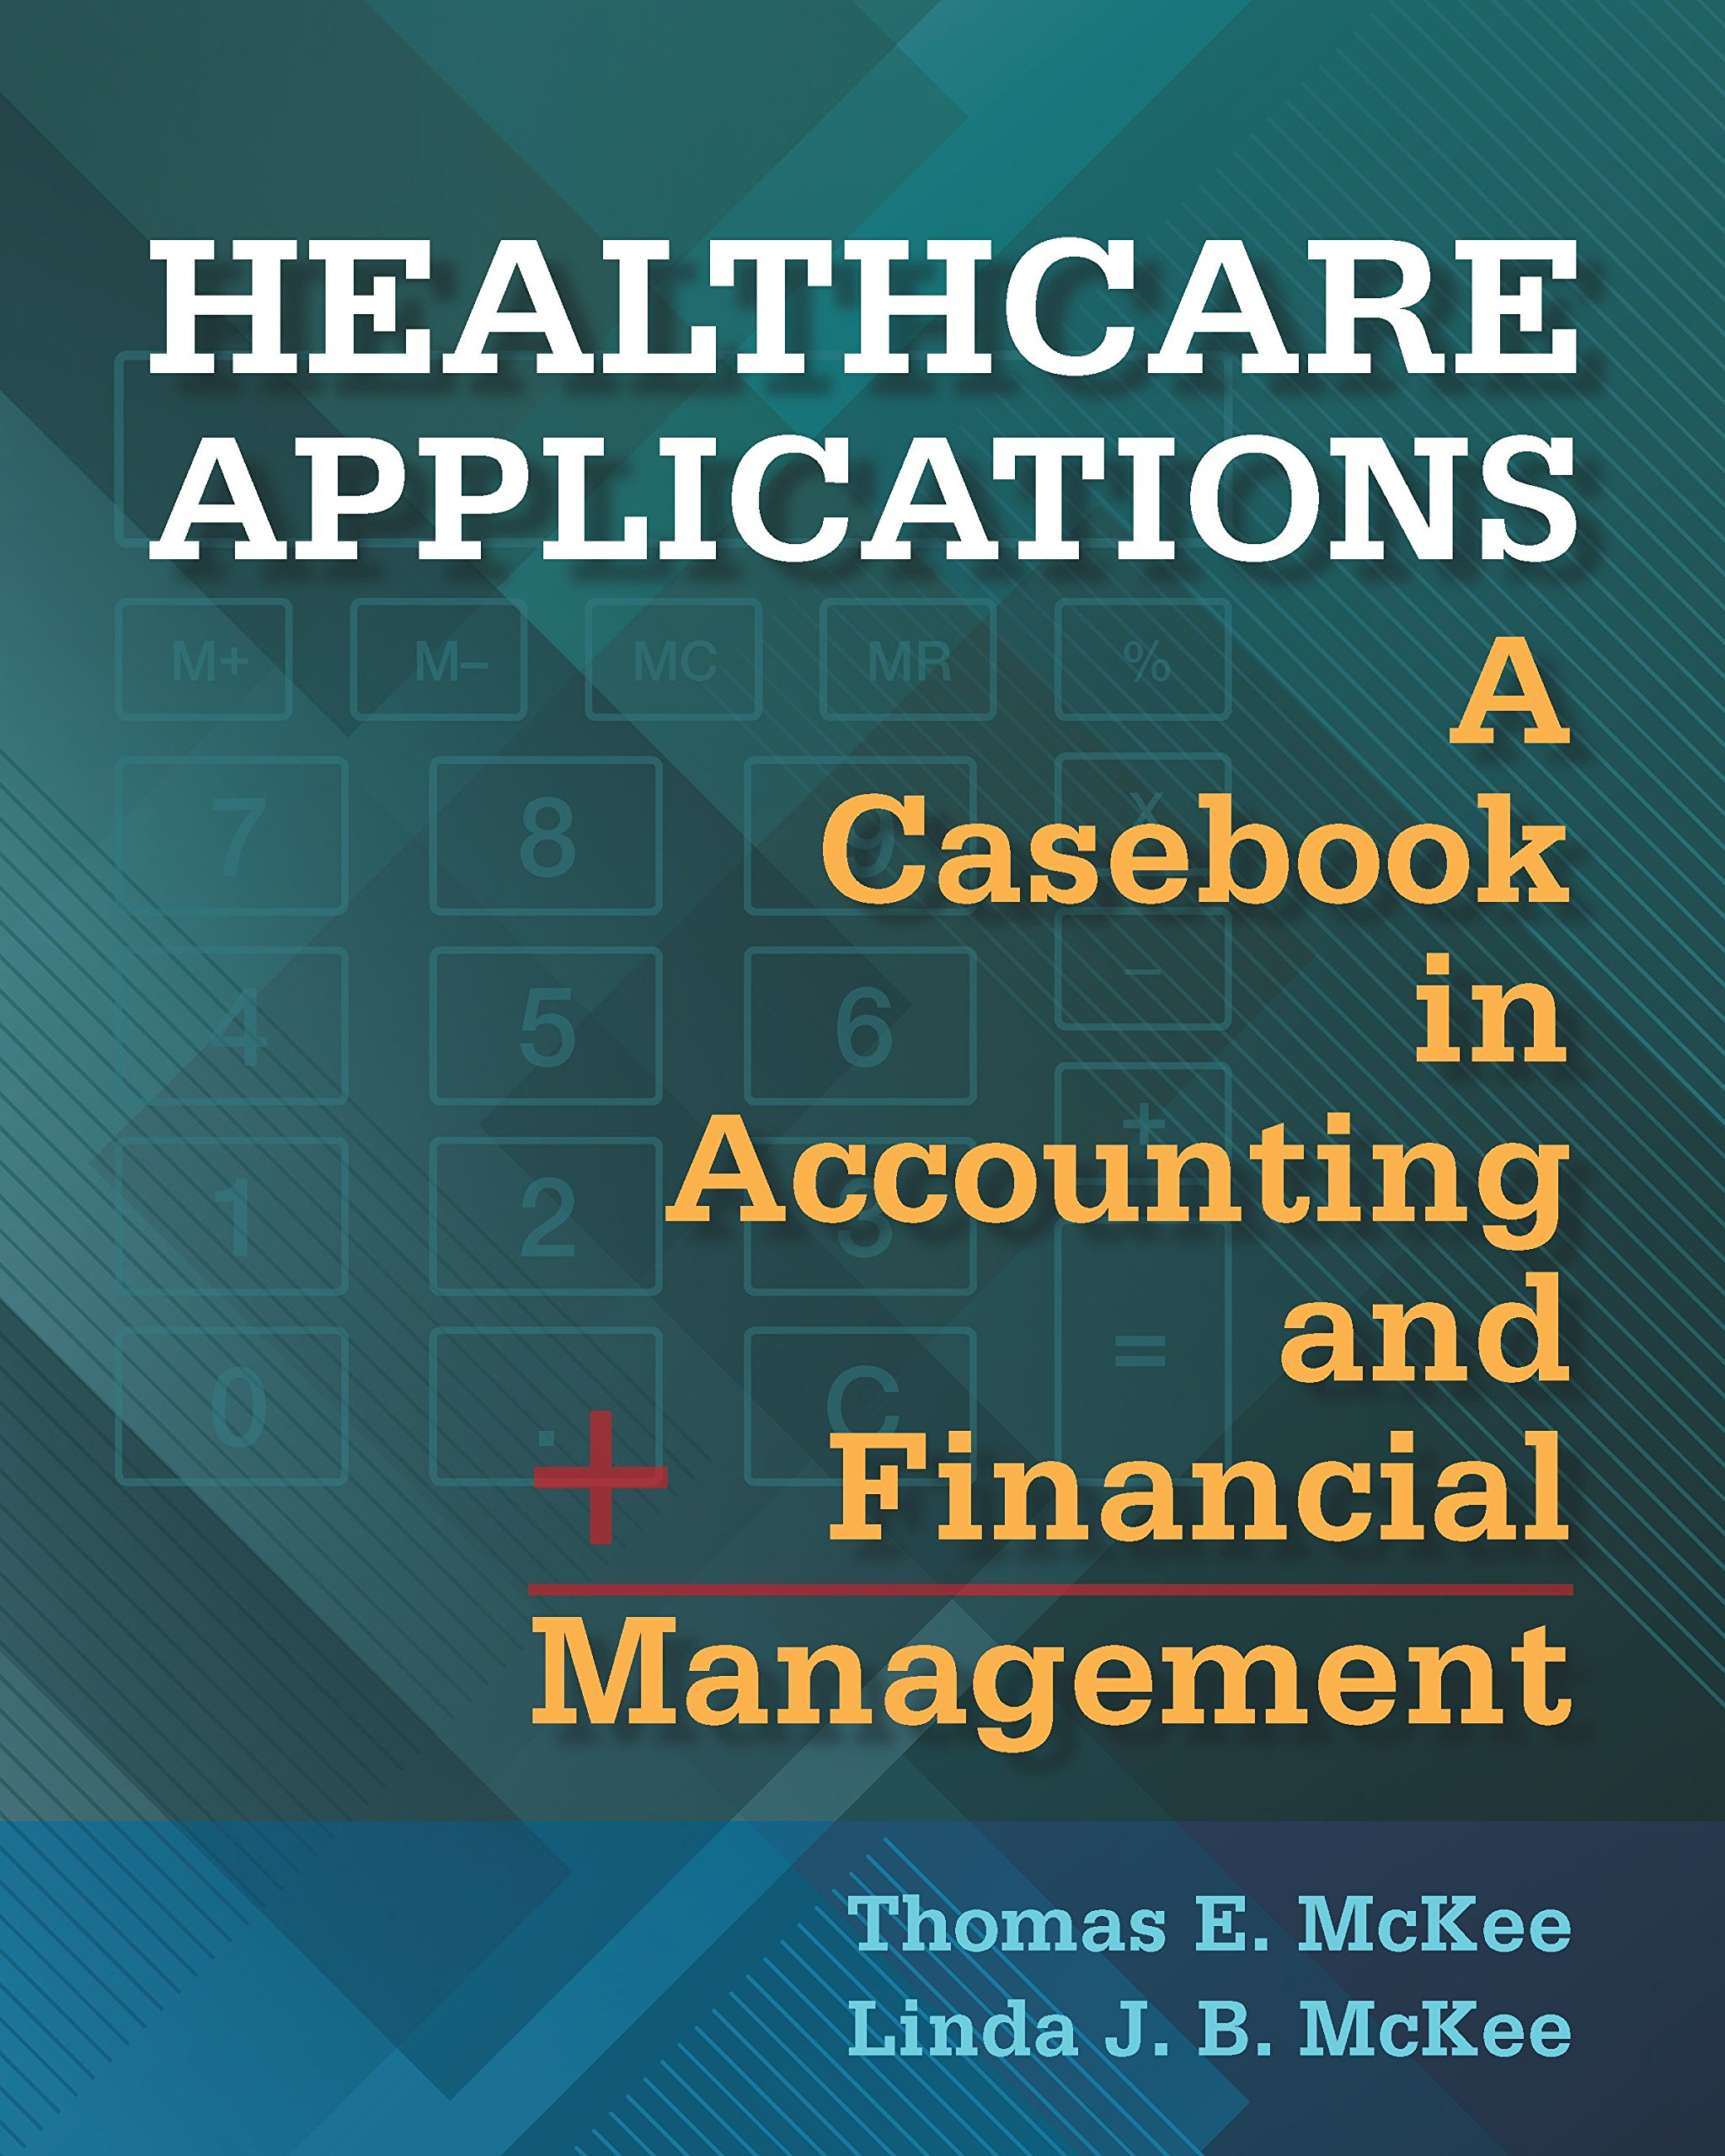 Healthcare Applications: A Casebook in Accounting and Financial Management